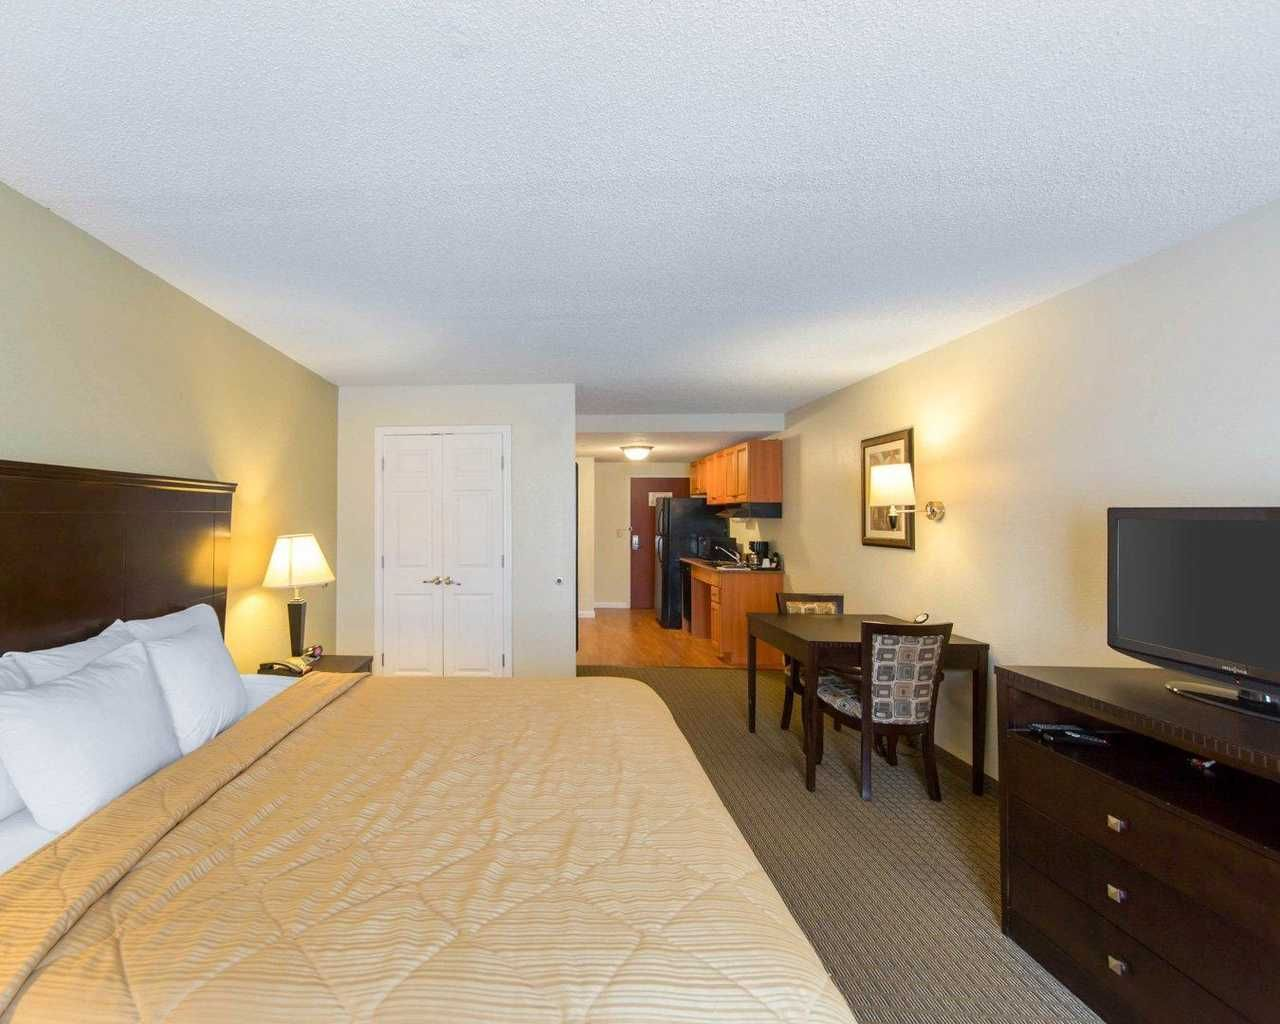 Stay At Knoxville Extended Stay Hotel Offering Amenities Like Free